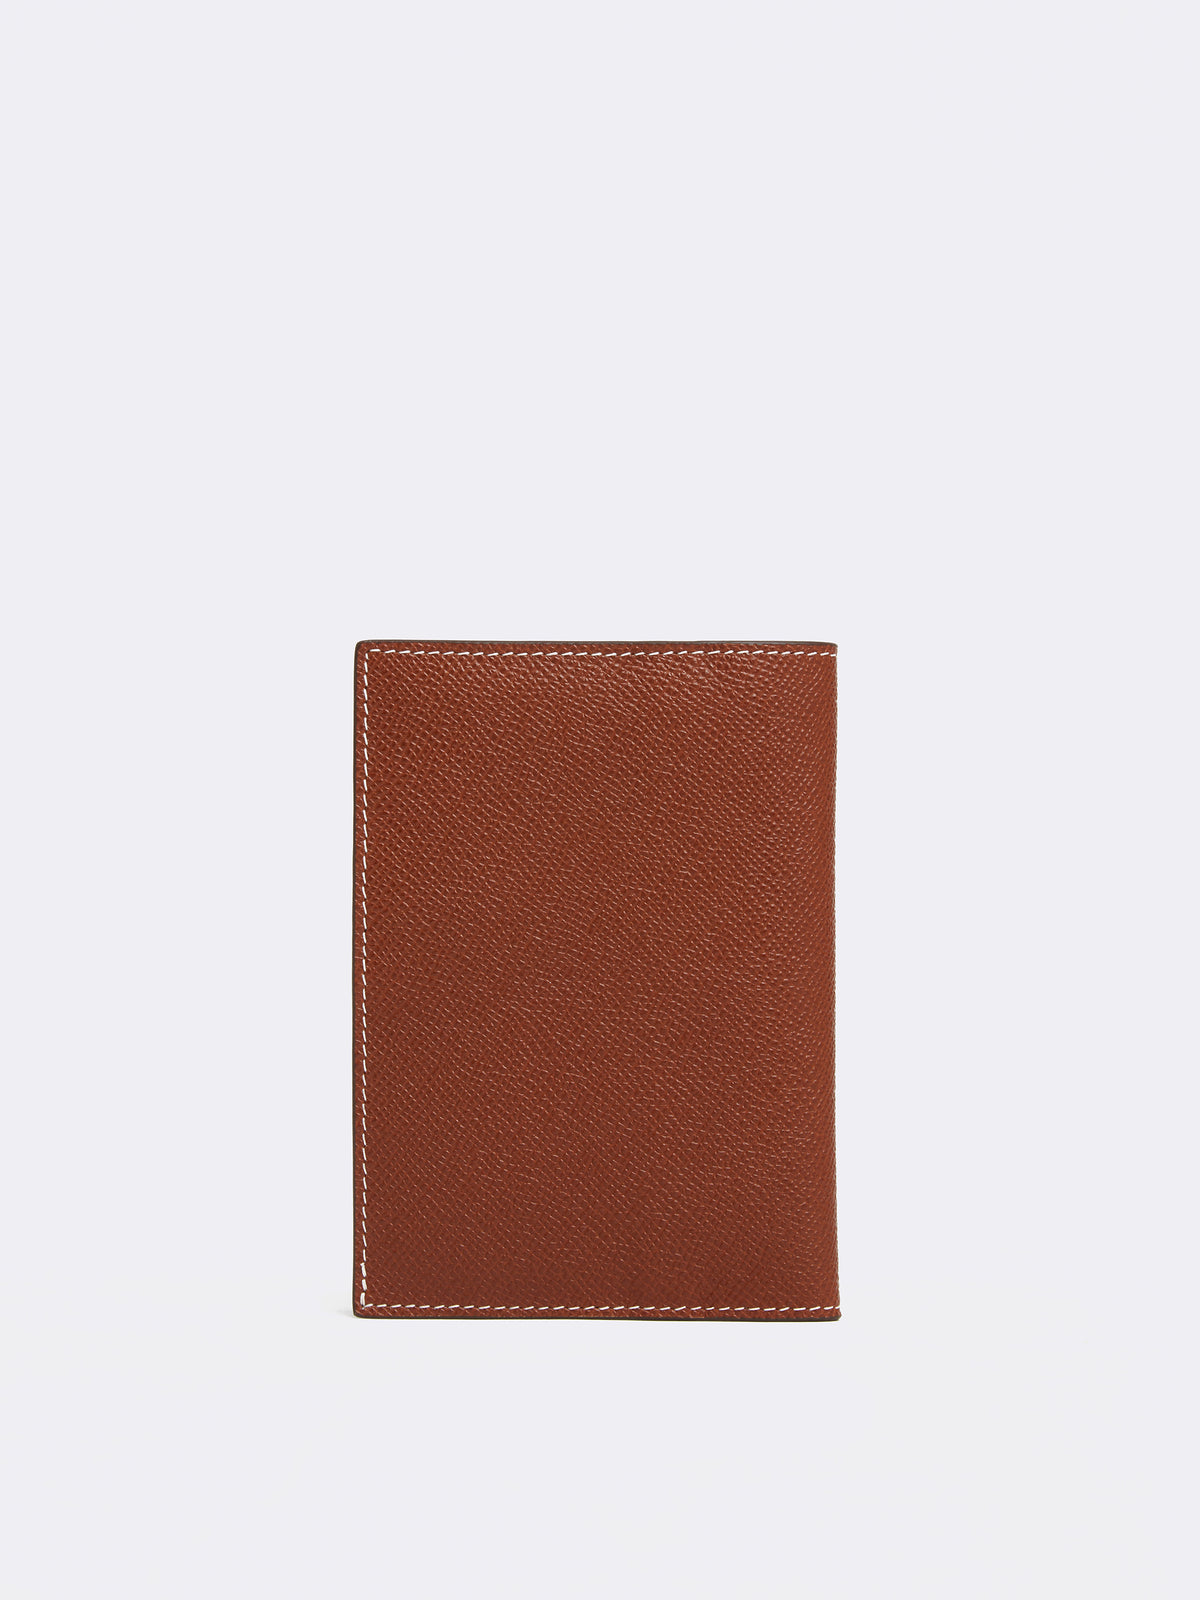 Mark Cross Leather Passport Cover Saffiano Acorn Interior